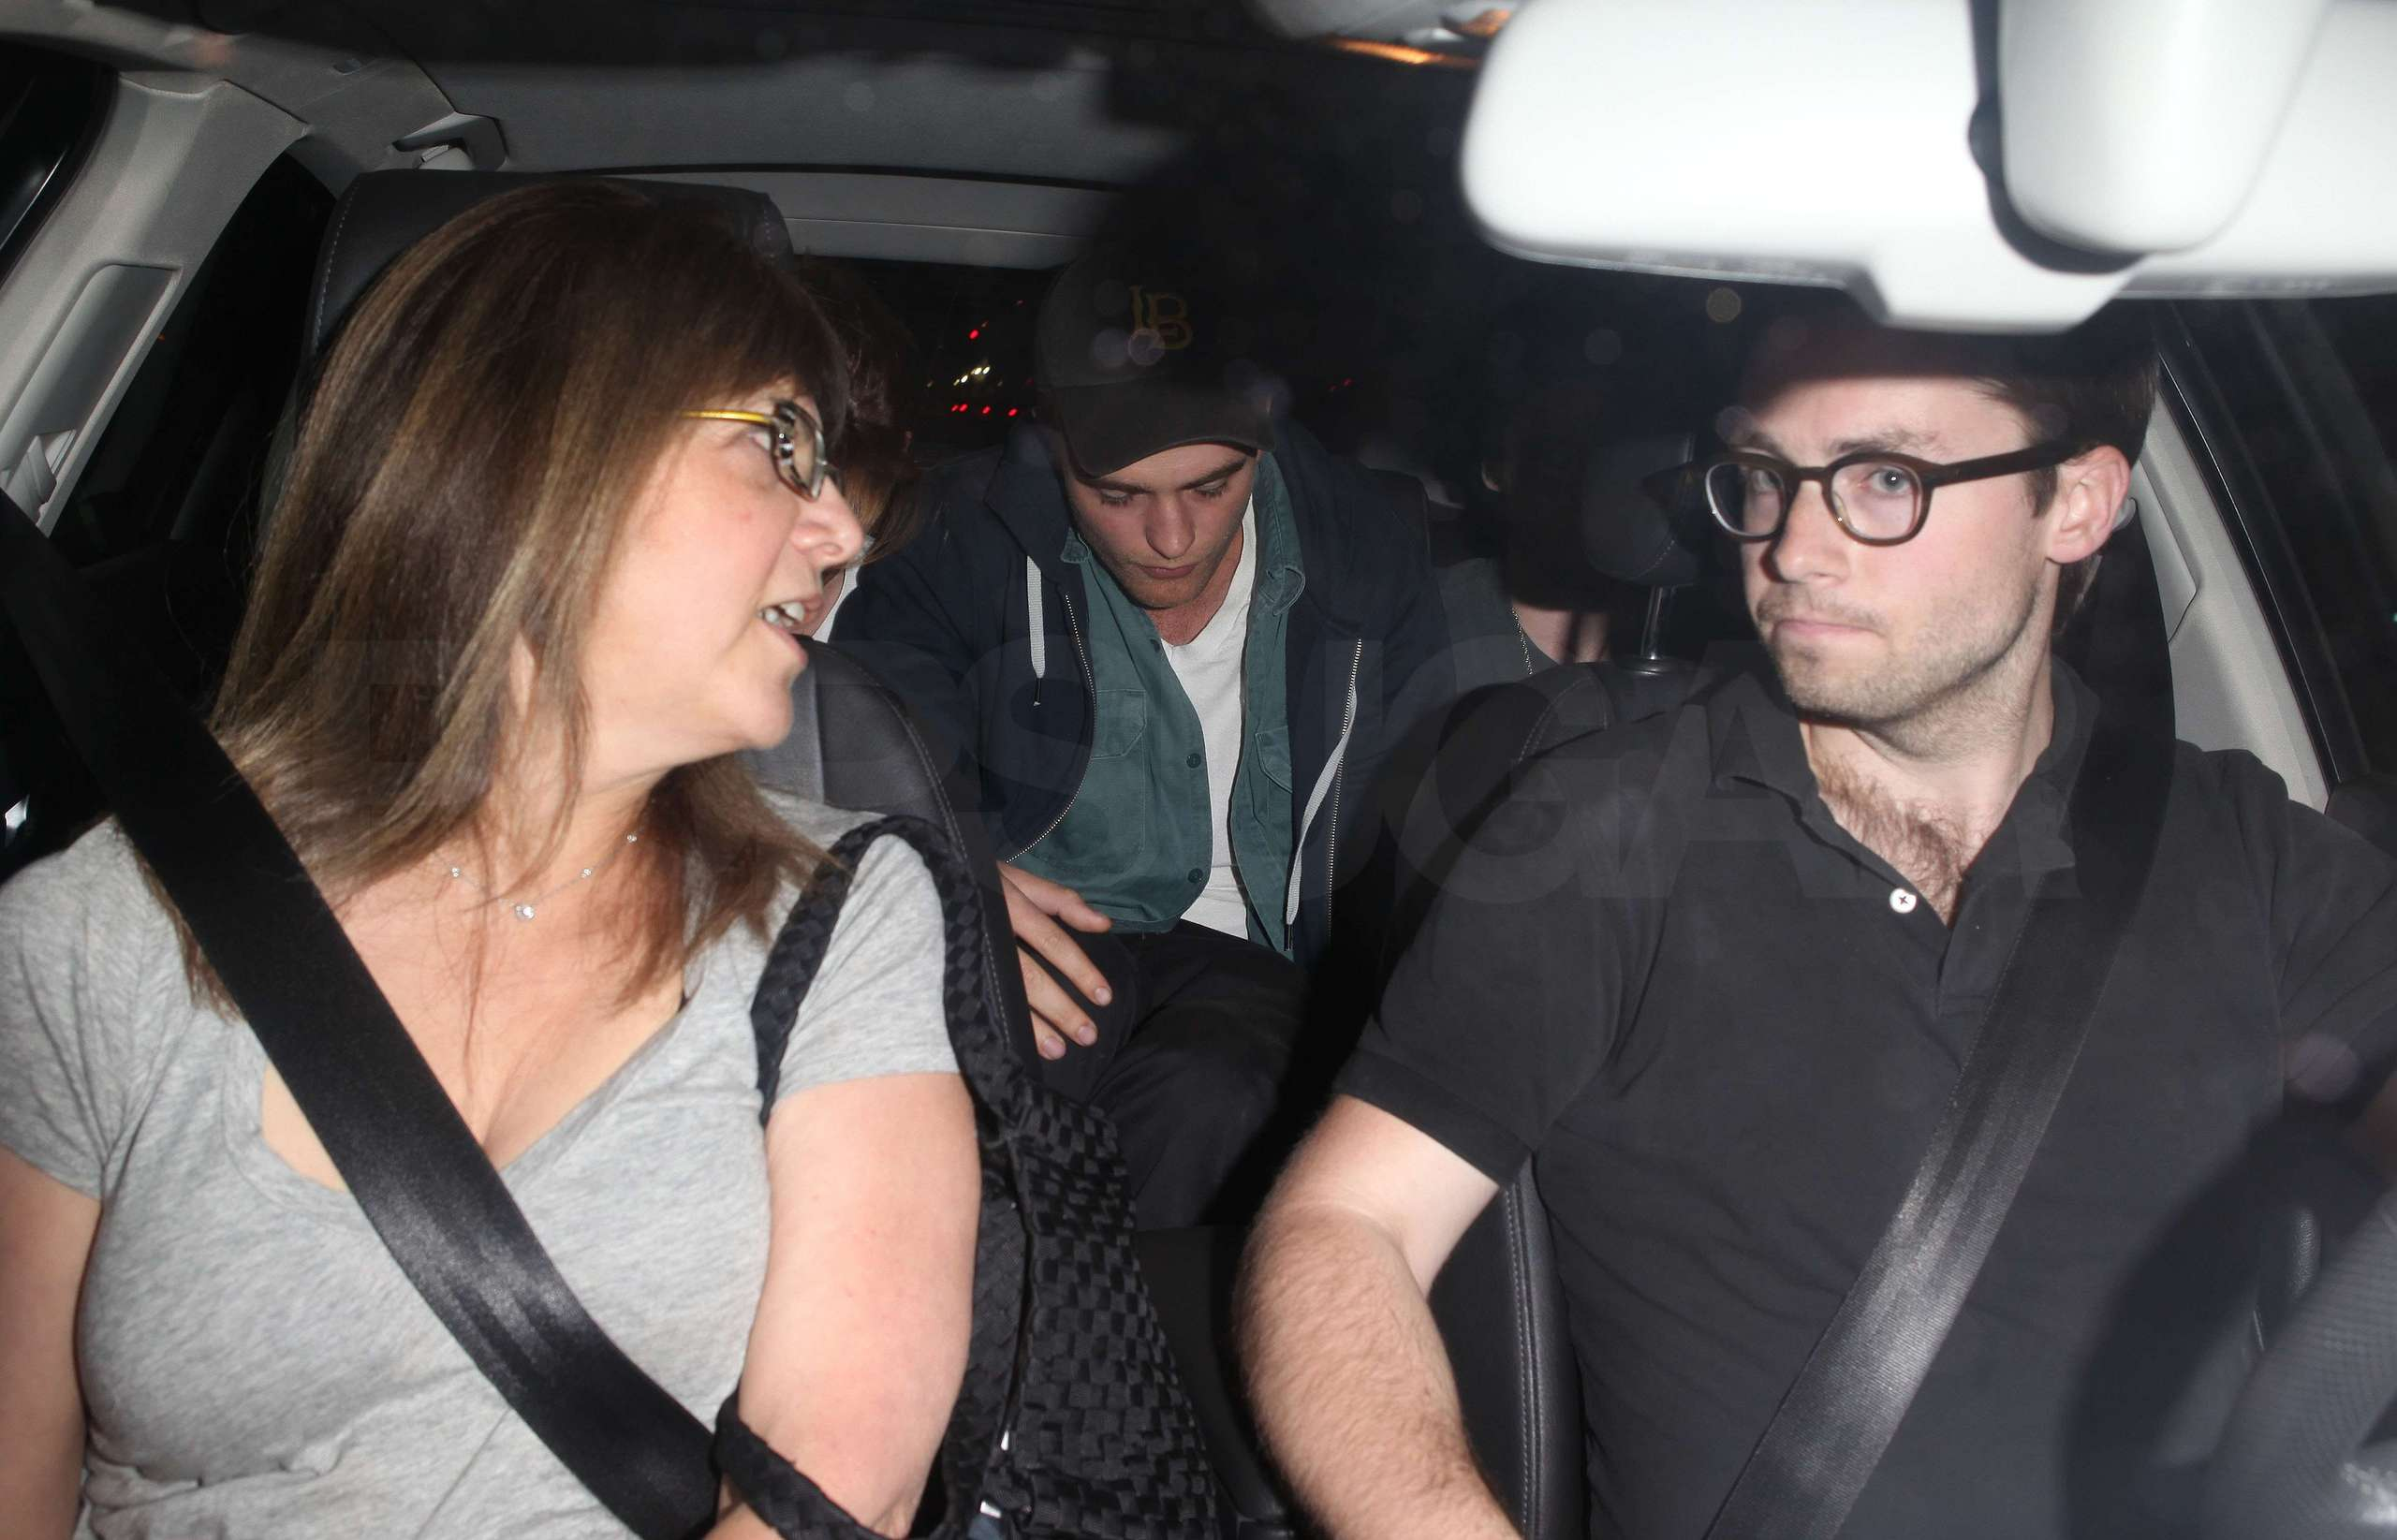 Rob and Kristen leaving Sam's konsert last night